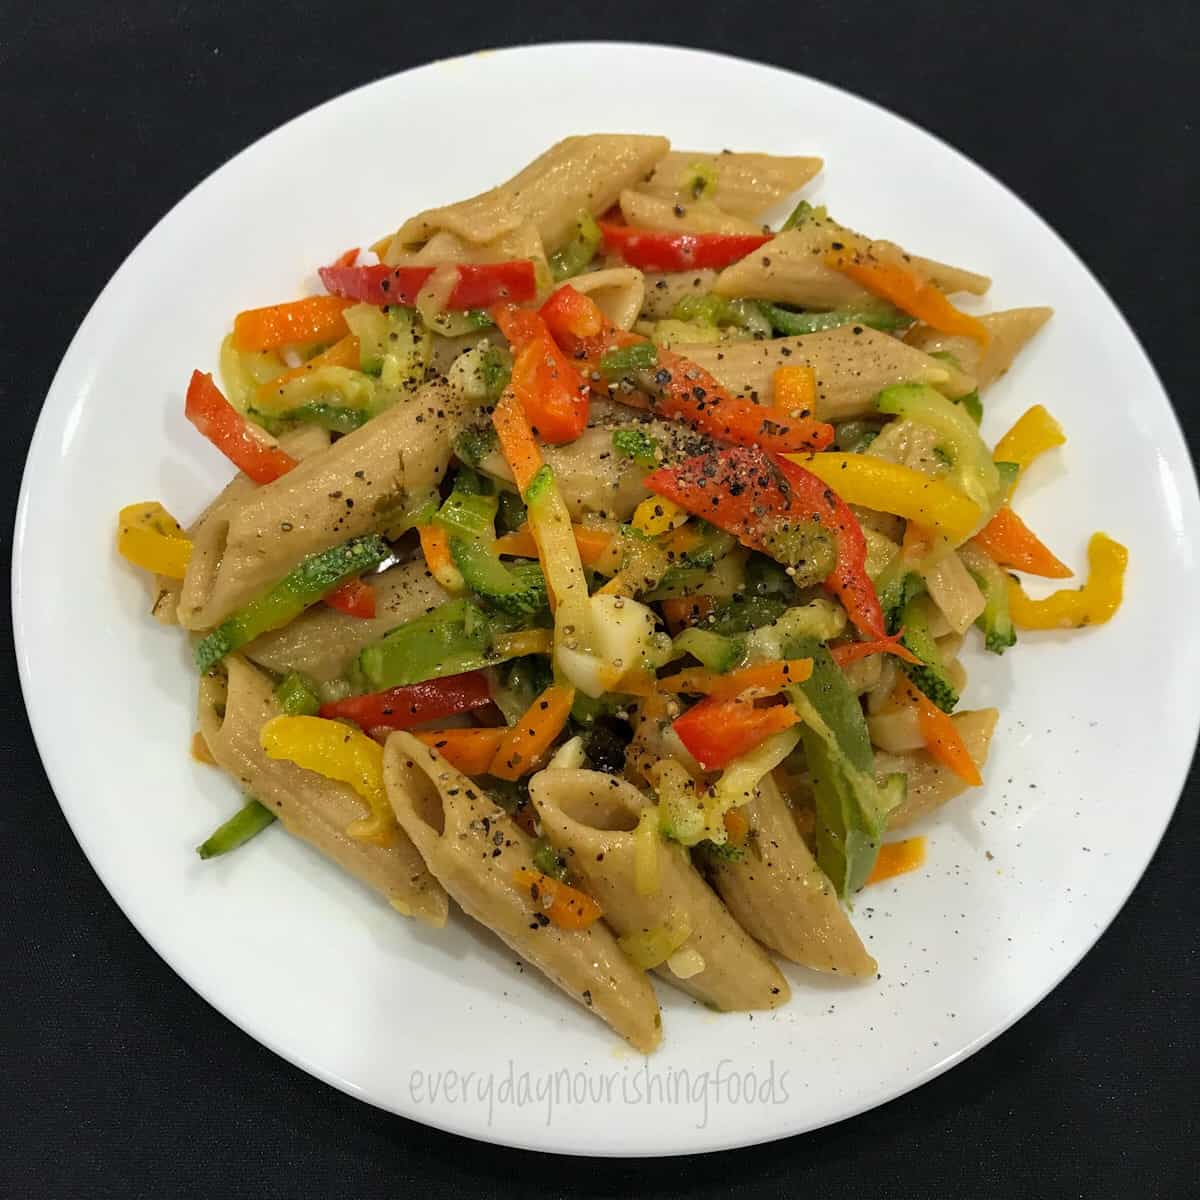 whole wheat penne pasta in a plate